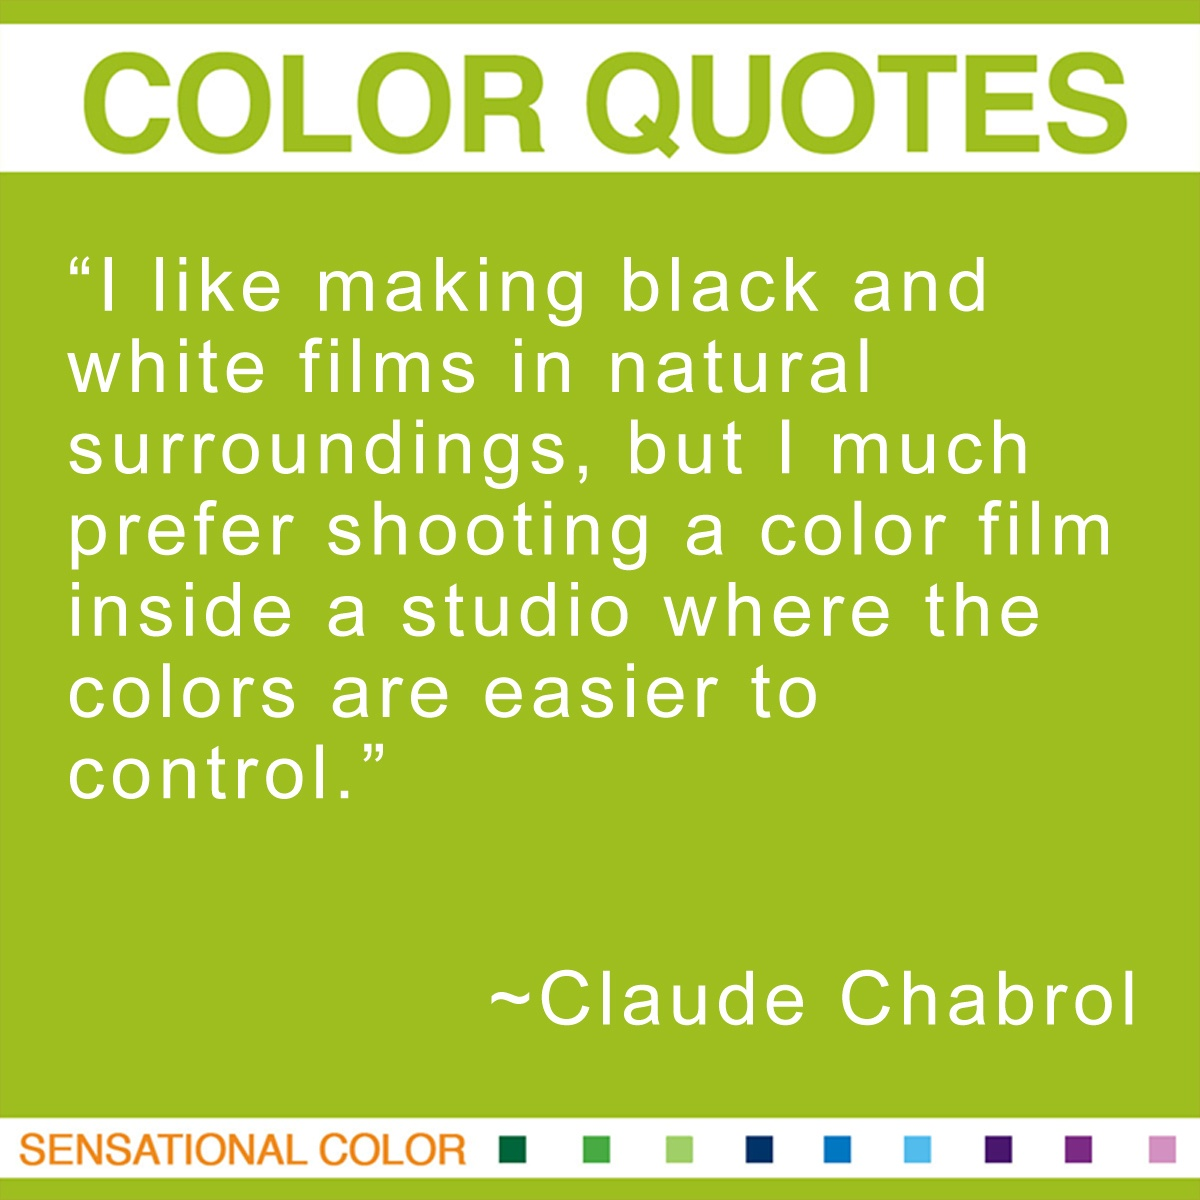 """I like making black and white films in natural surroundings, but I much prefer shooting a color film inside a studio where the colors are easier to control."" - Claude Chabrol"